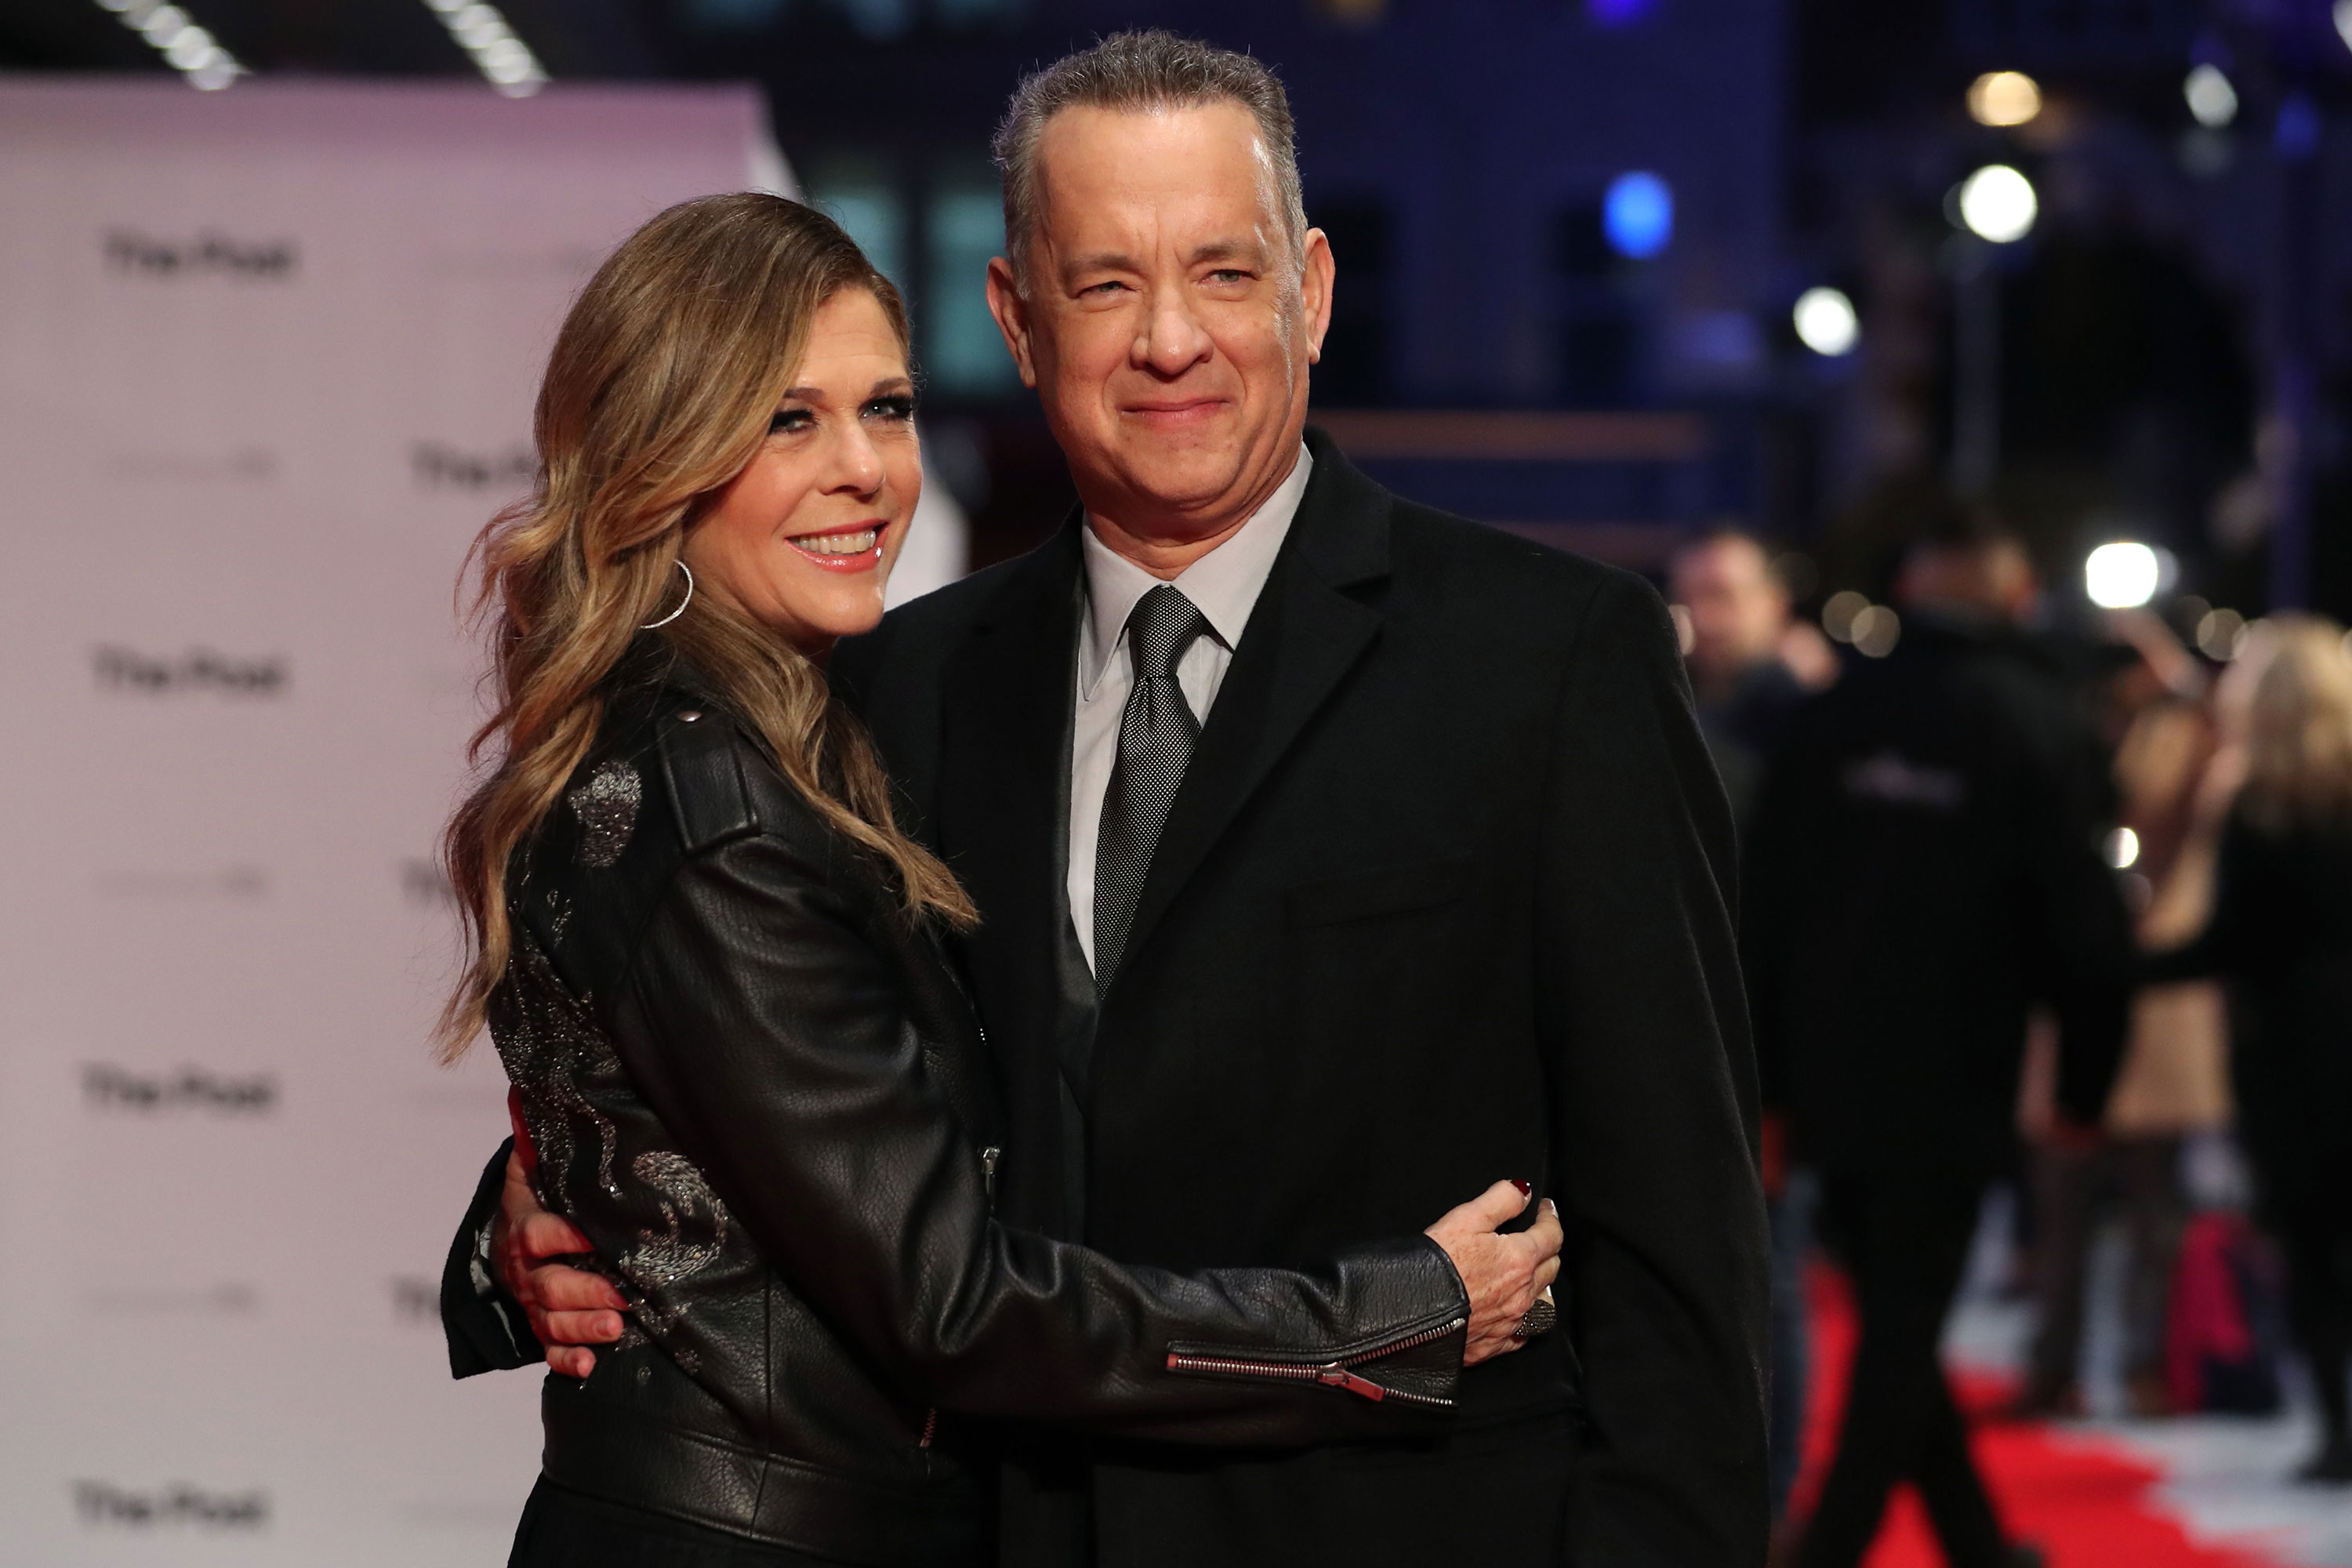 Rita Wilson explains why she and Tom Hanks haven't been vaccinated yet